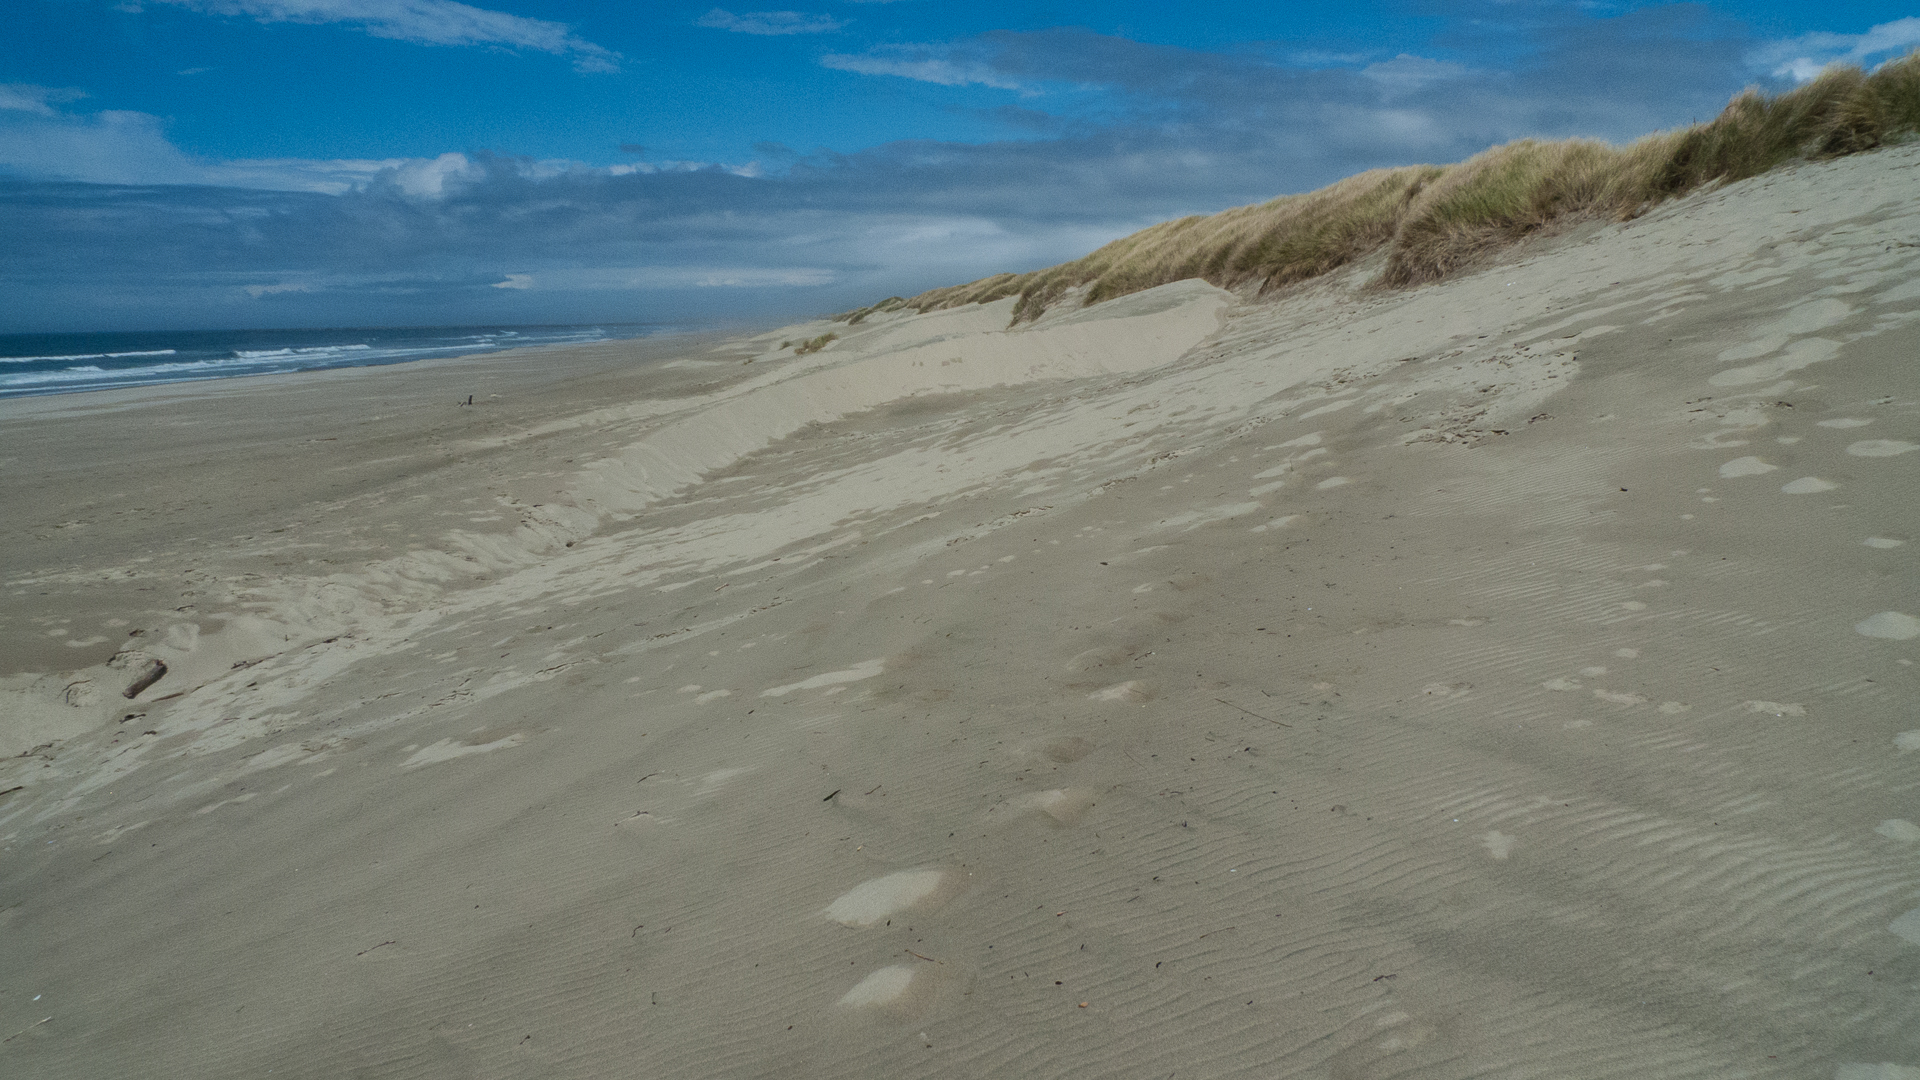 The beach is massive, and the dunes seem to go on forever.